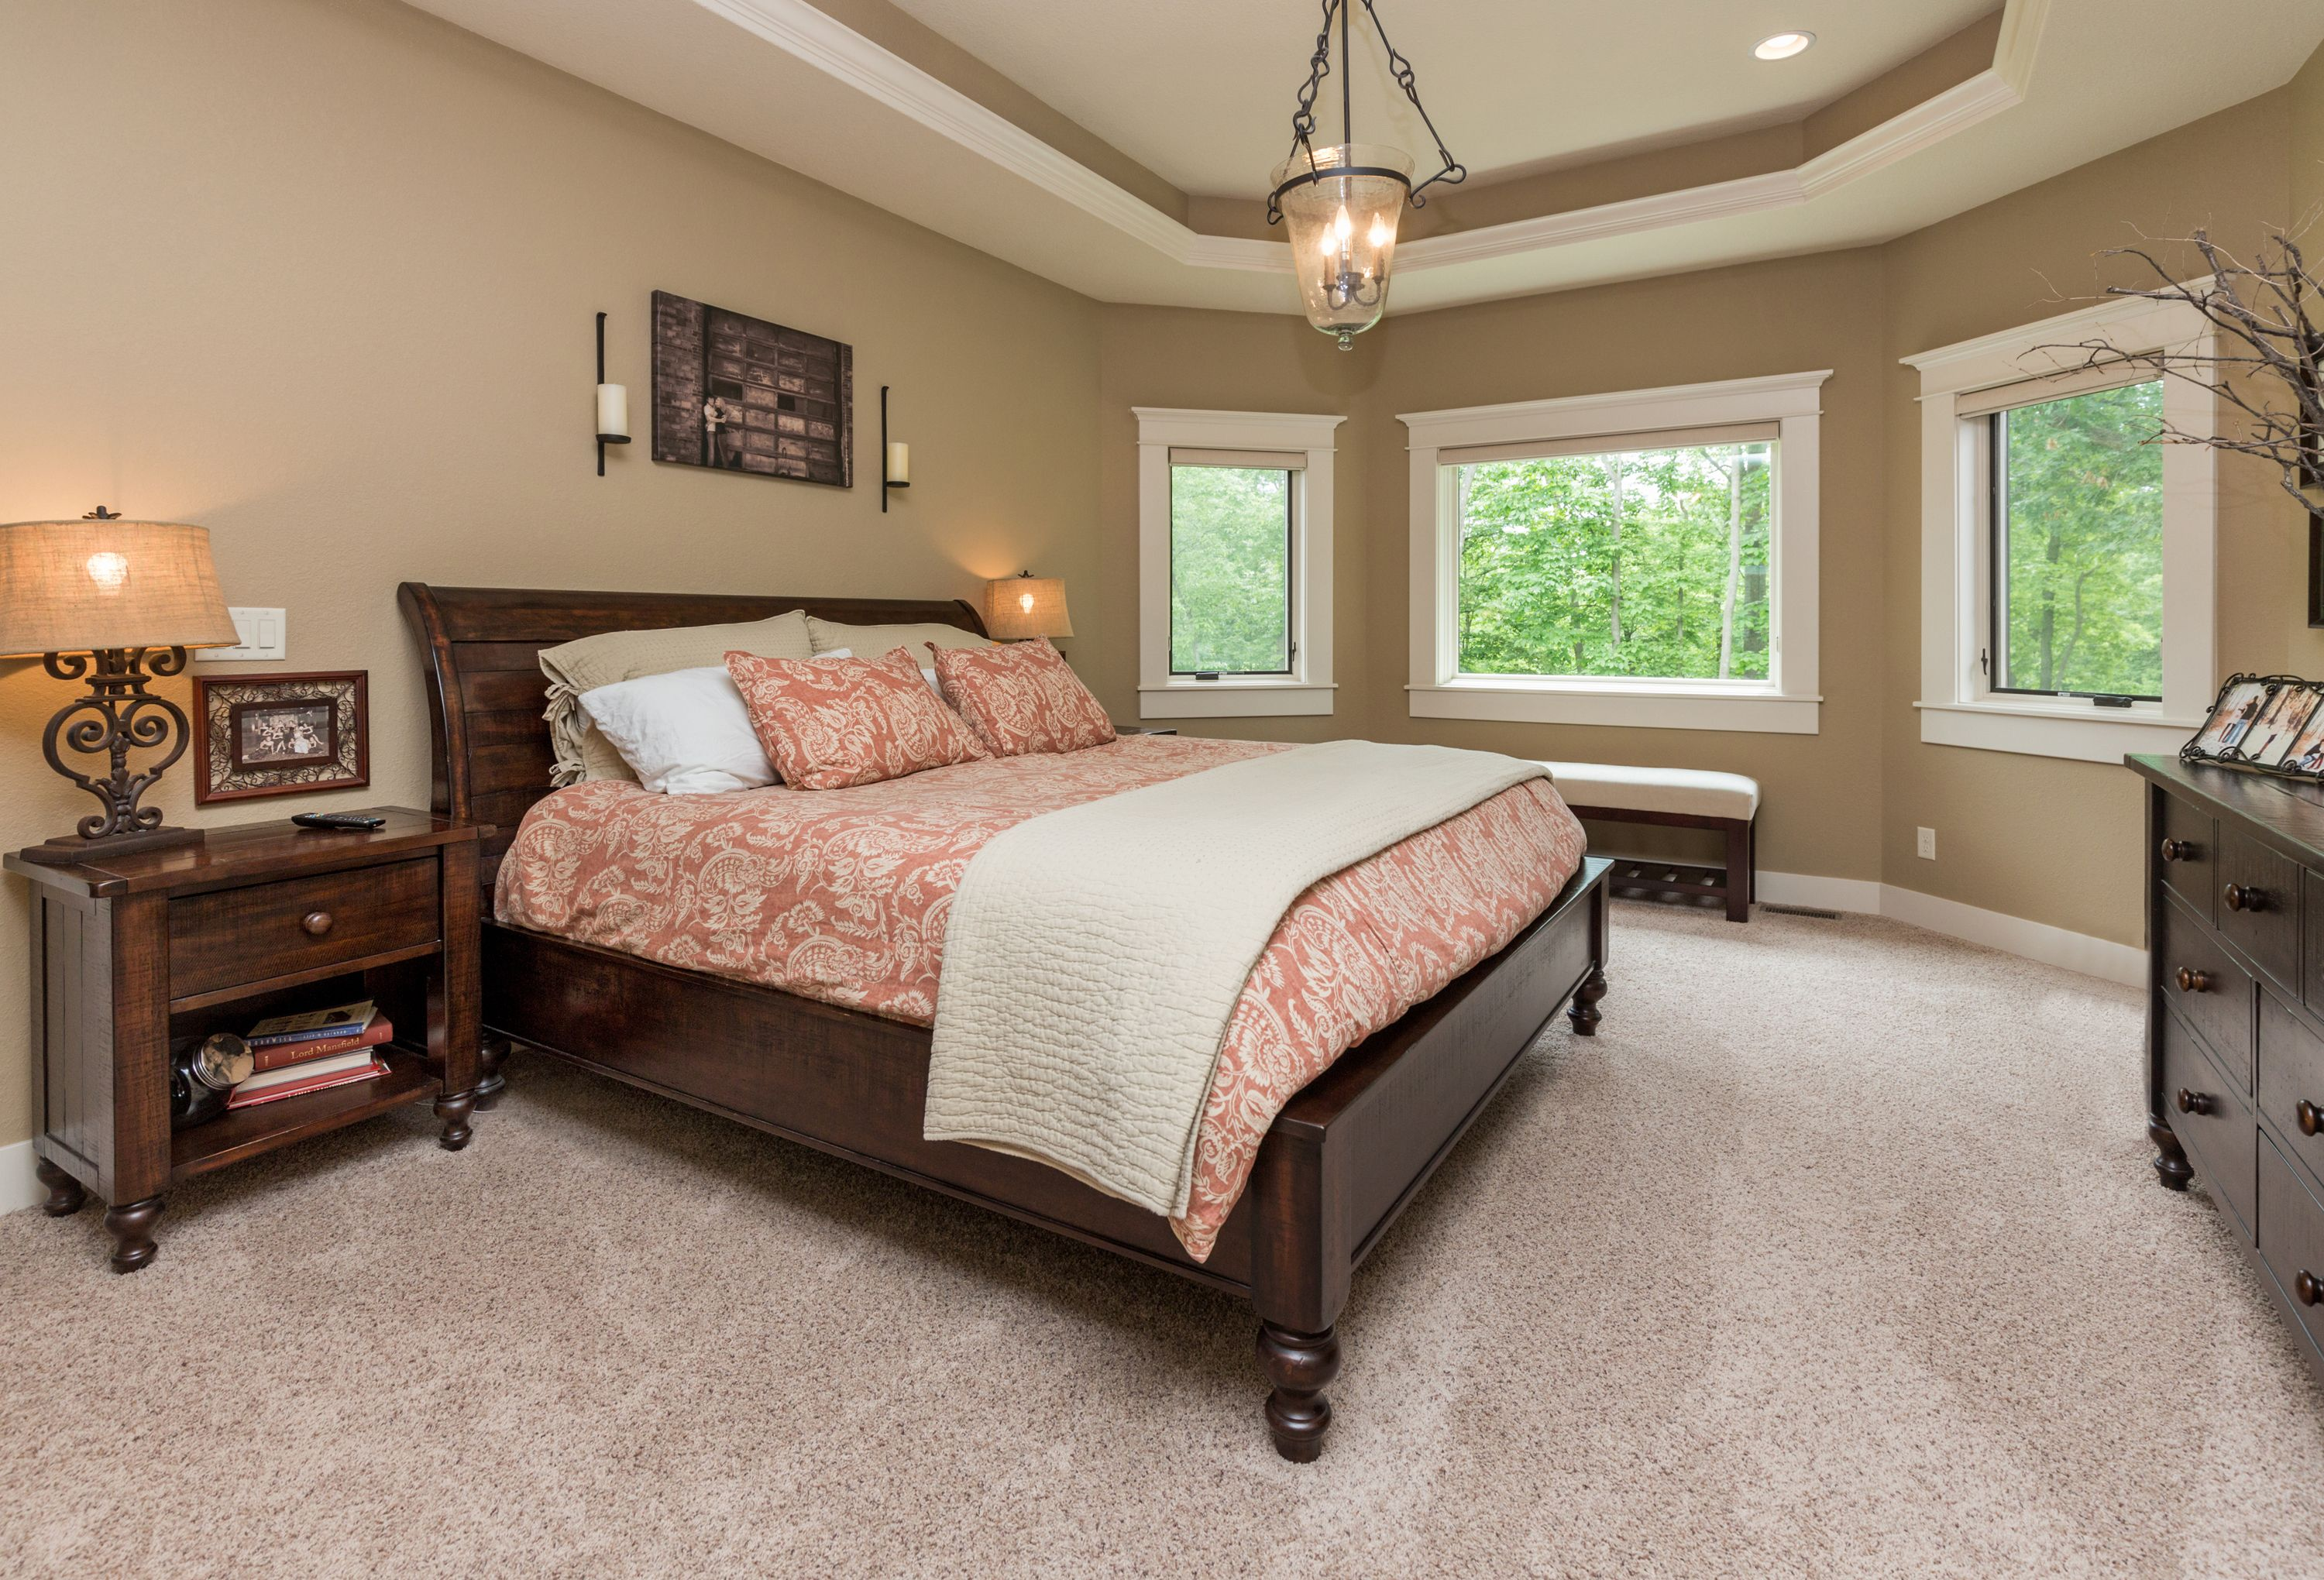 tray ceiling, decorative light above bed Home, Home